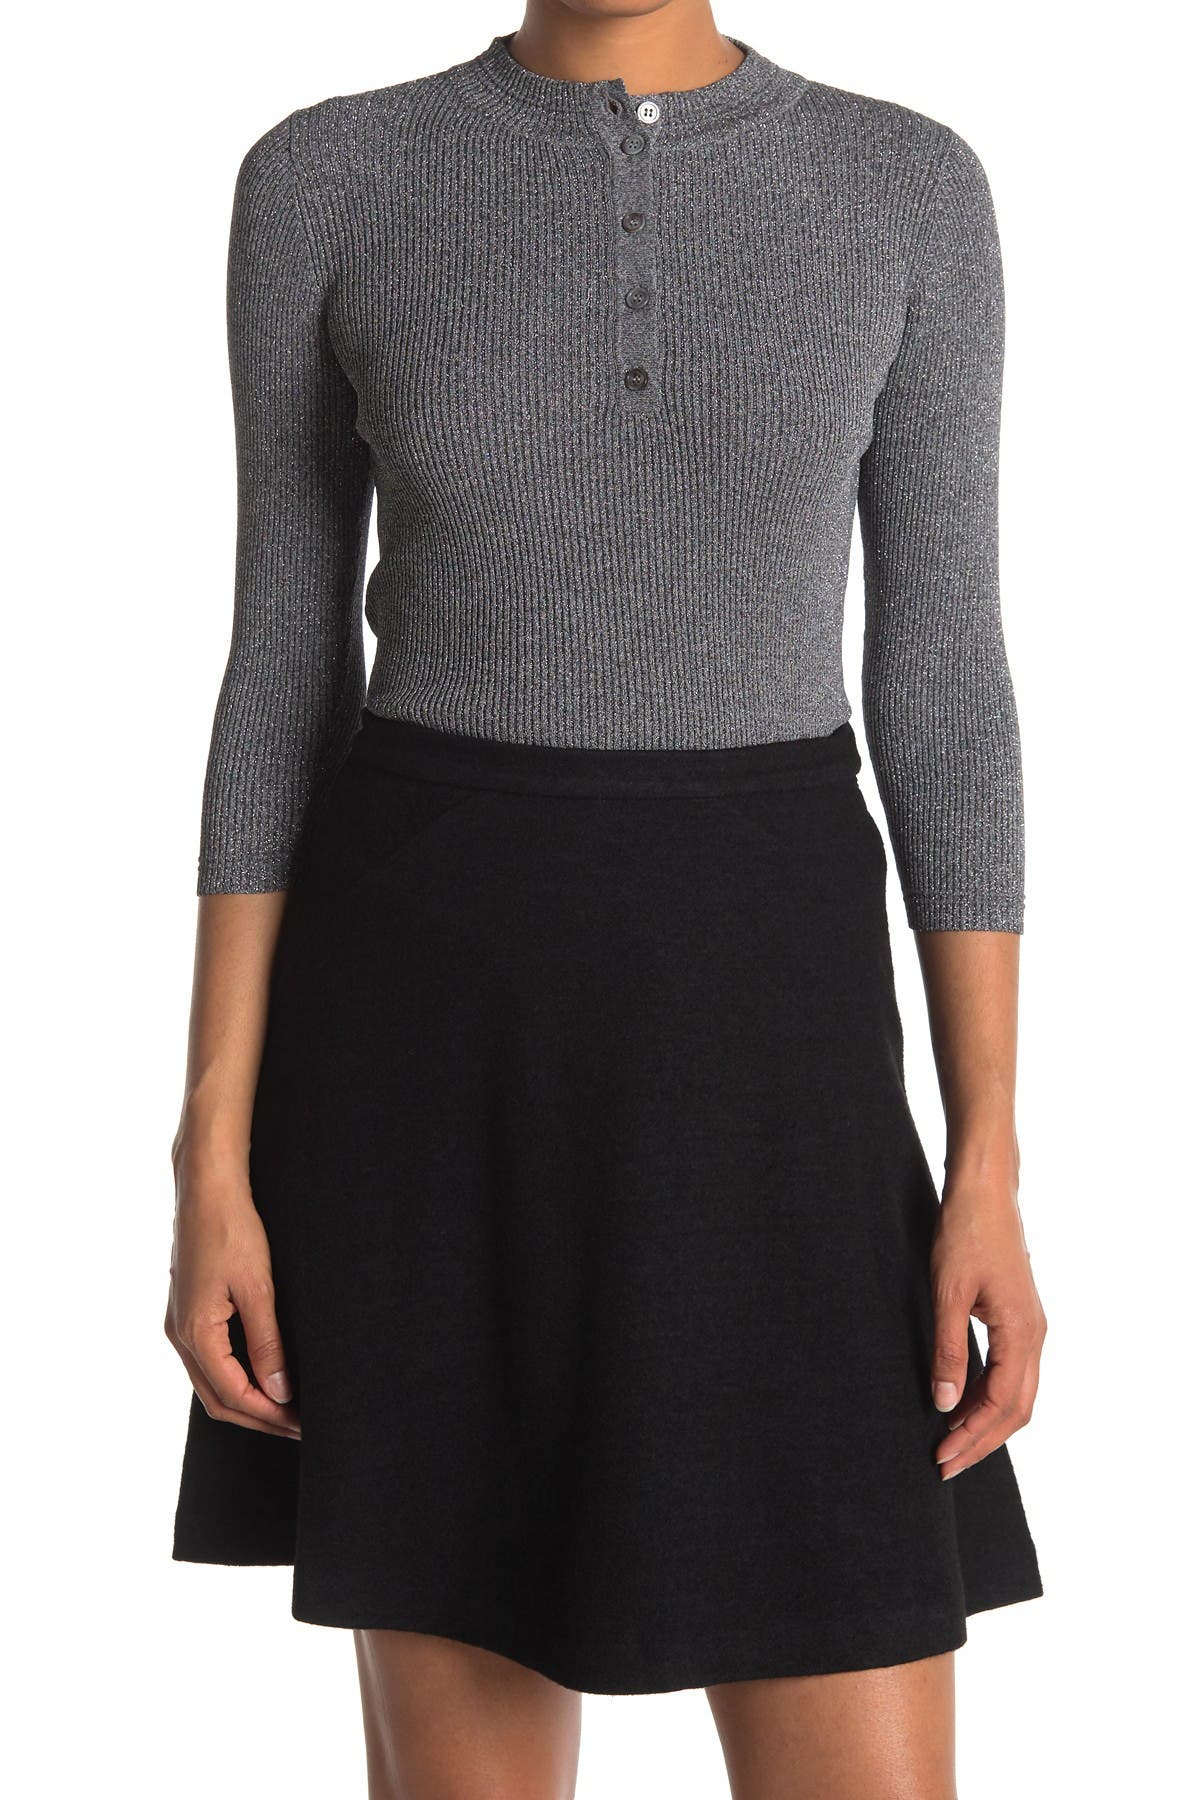 Image of FRNCH Collared 3/4 Sleeve Midi Shift Dress